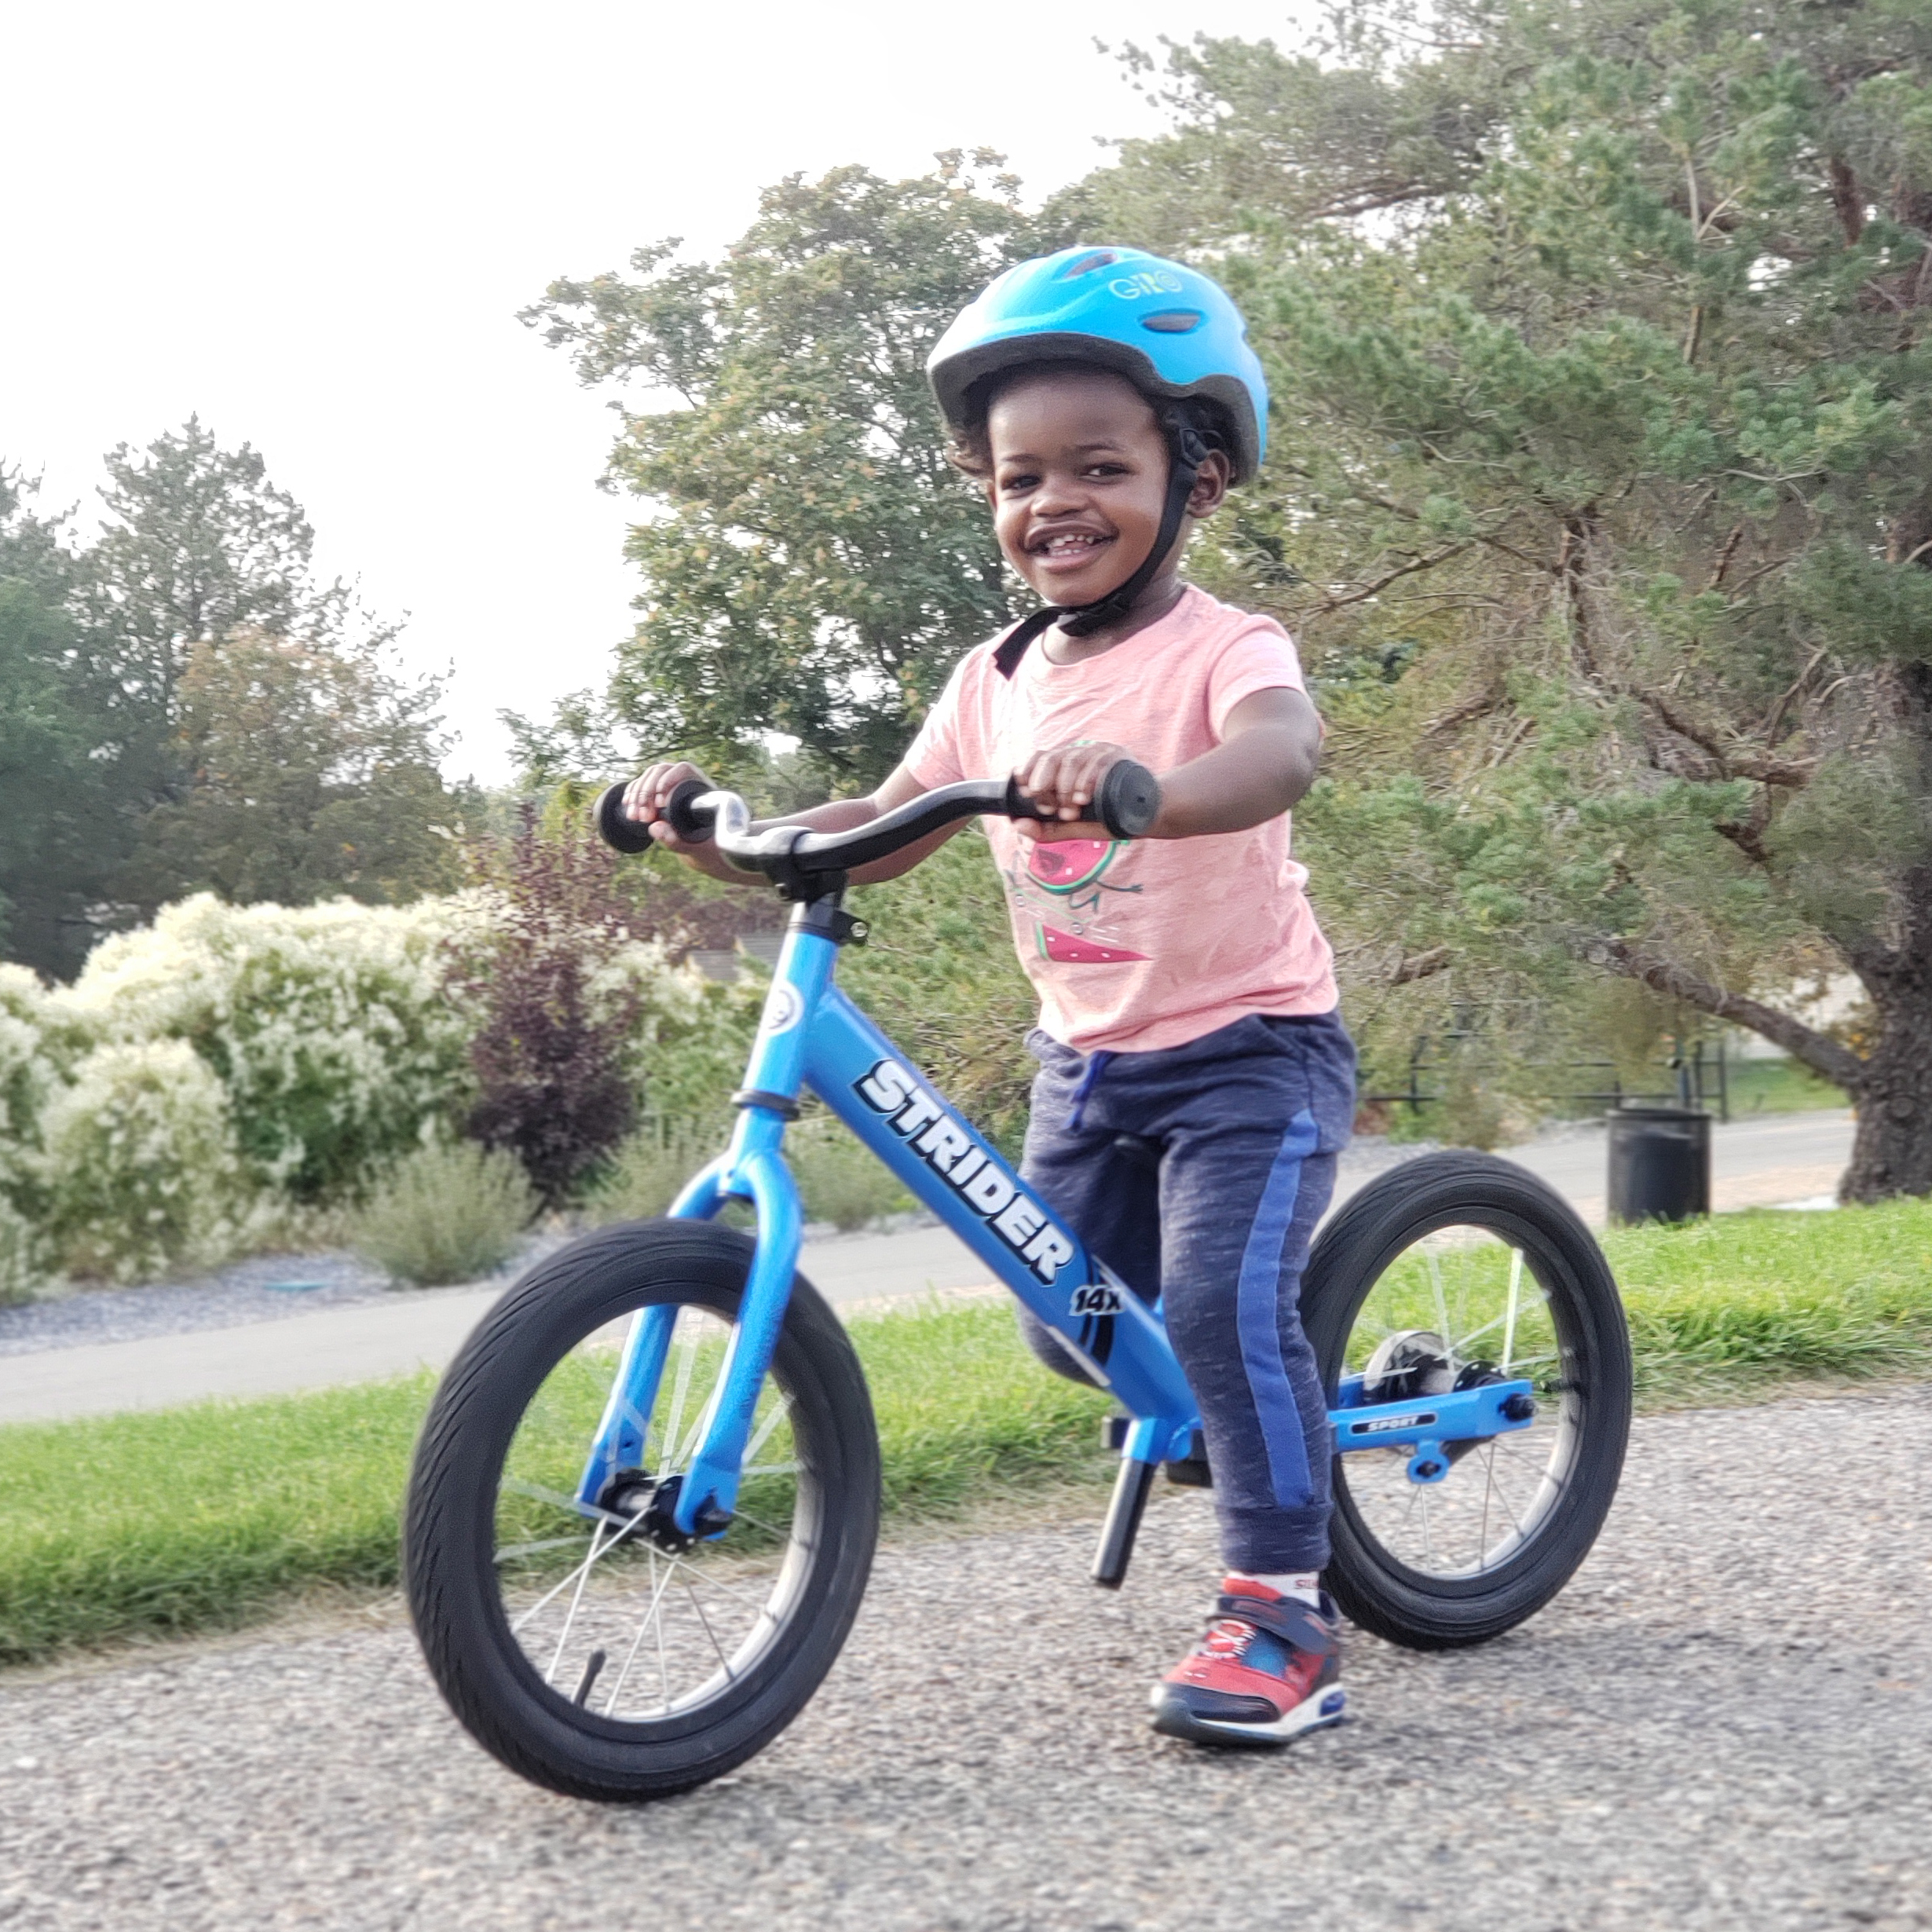 Biking Springs Children into Better Focus and Healthier Habits